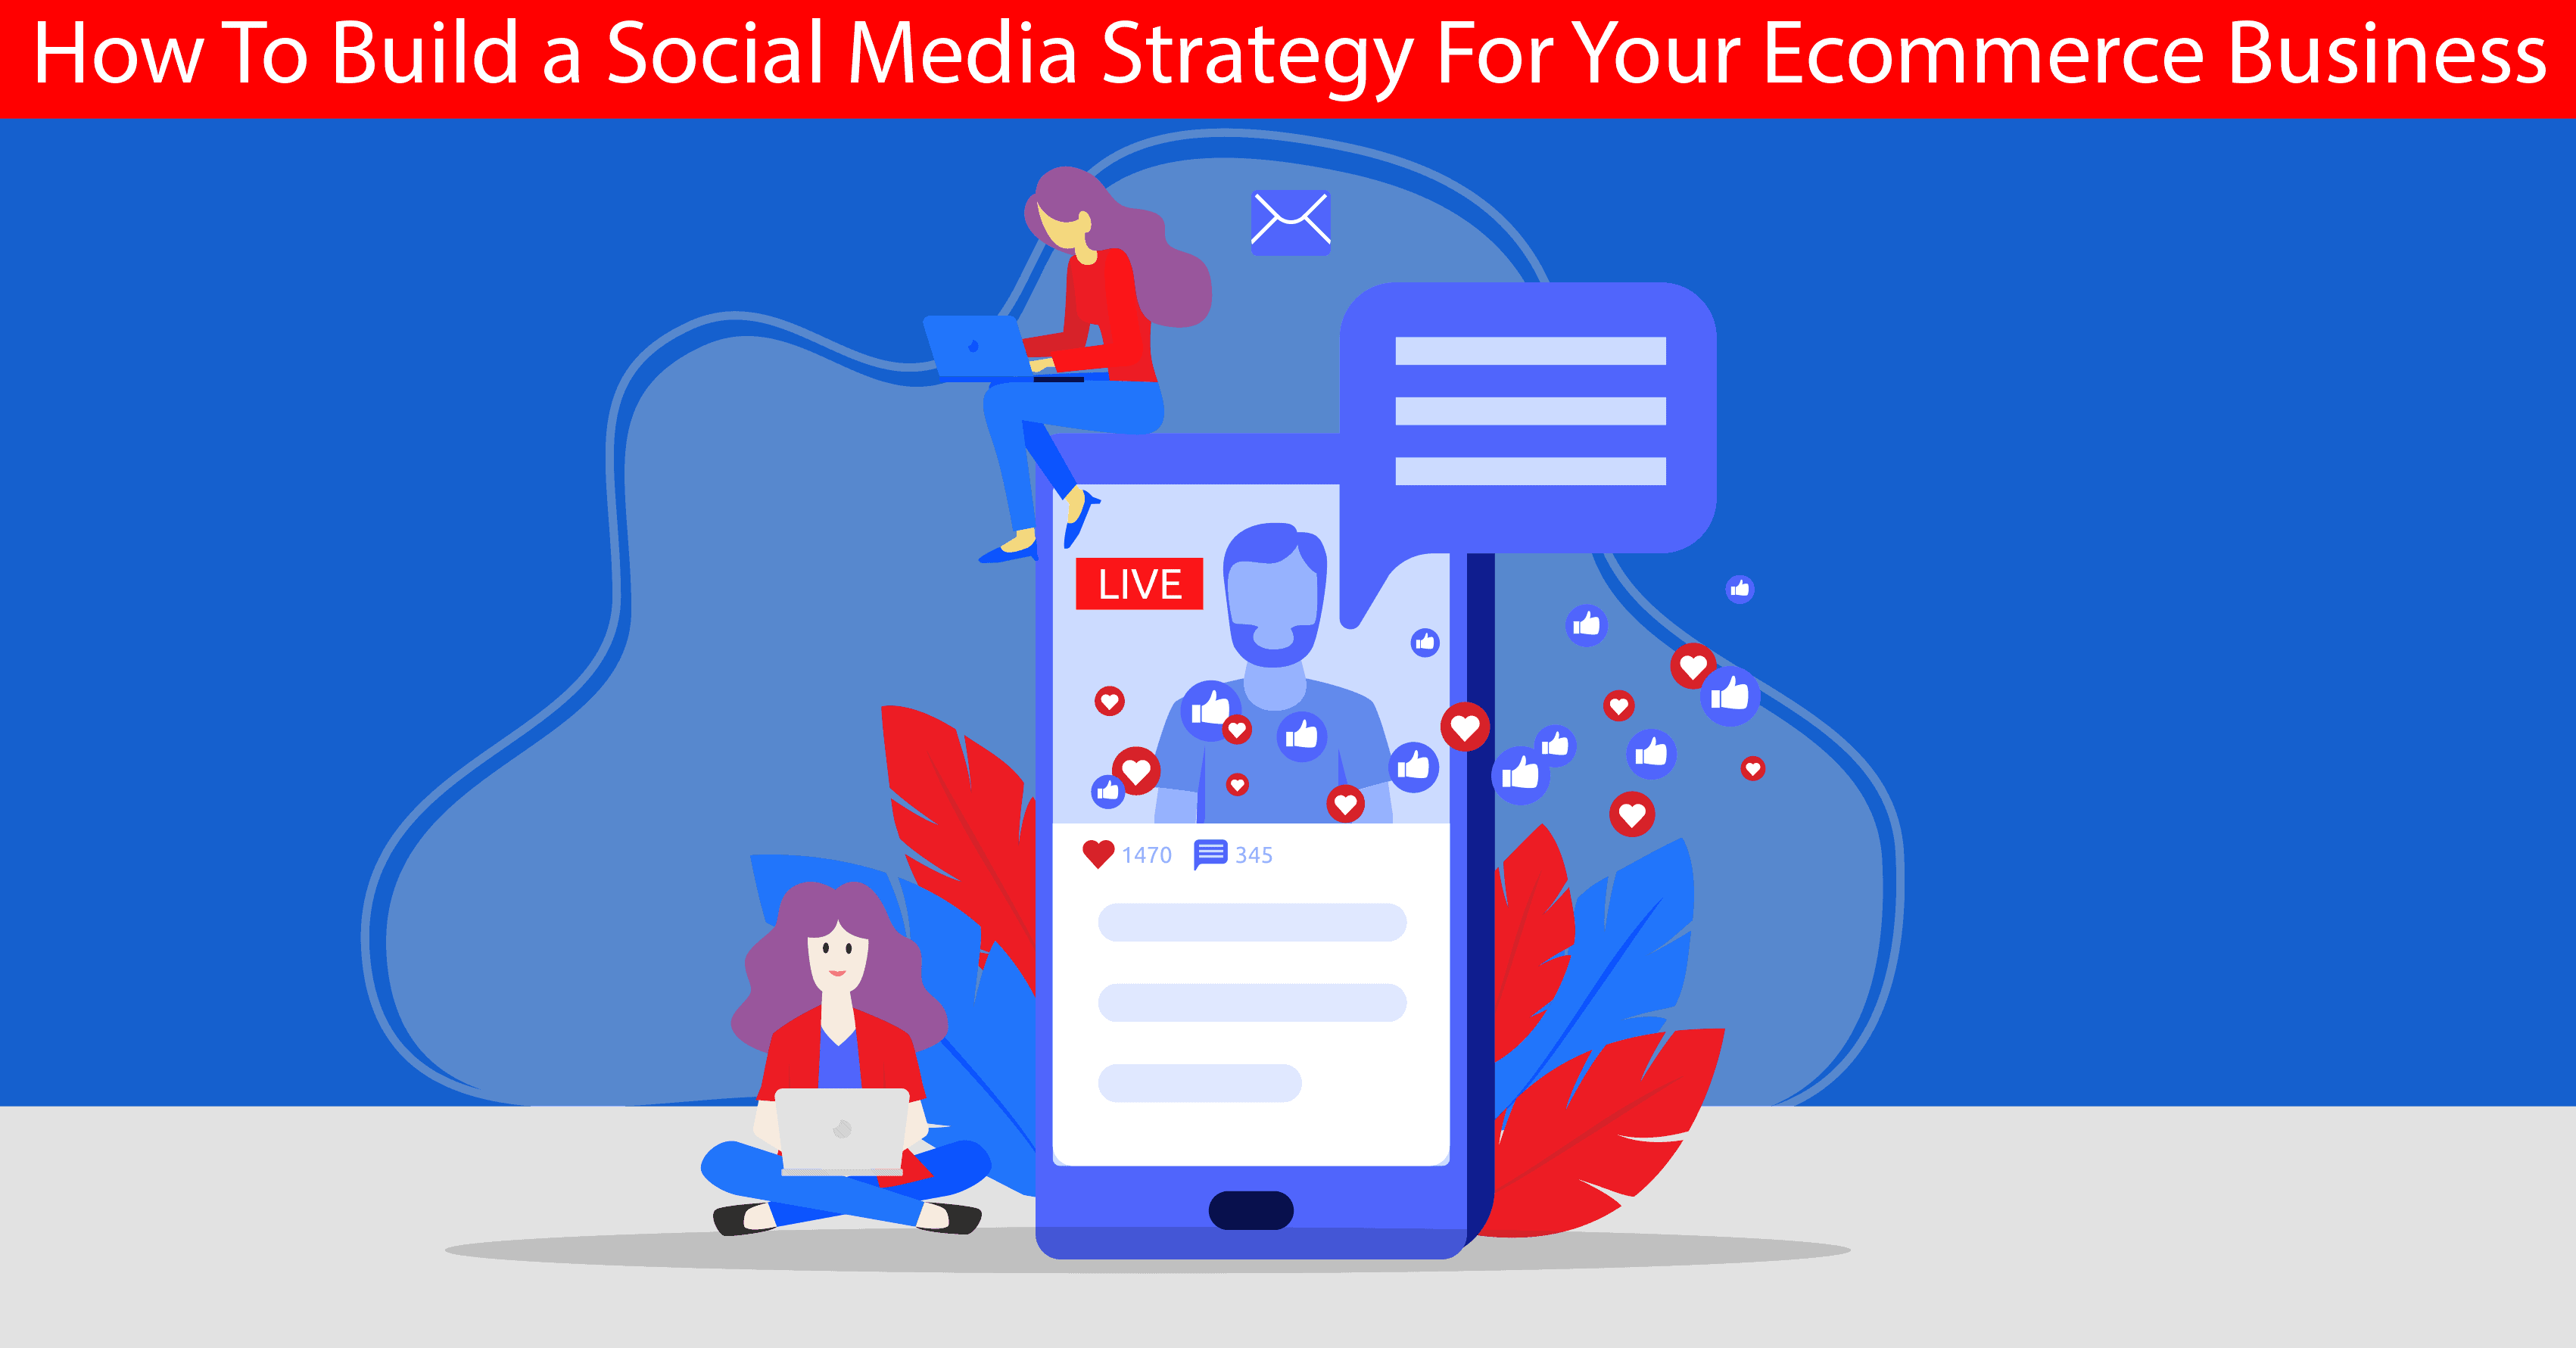 Build social media strategy banner